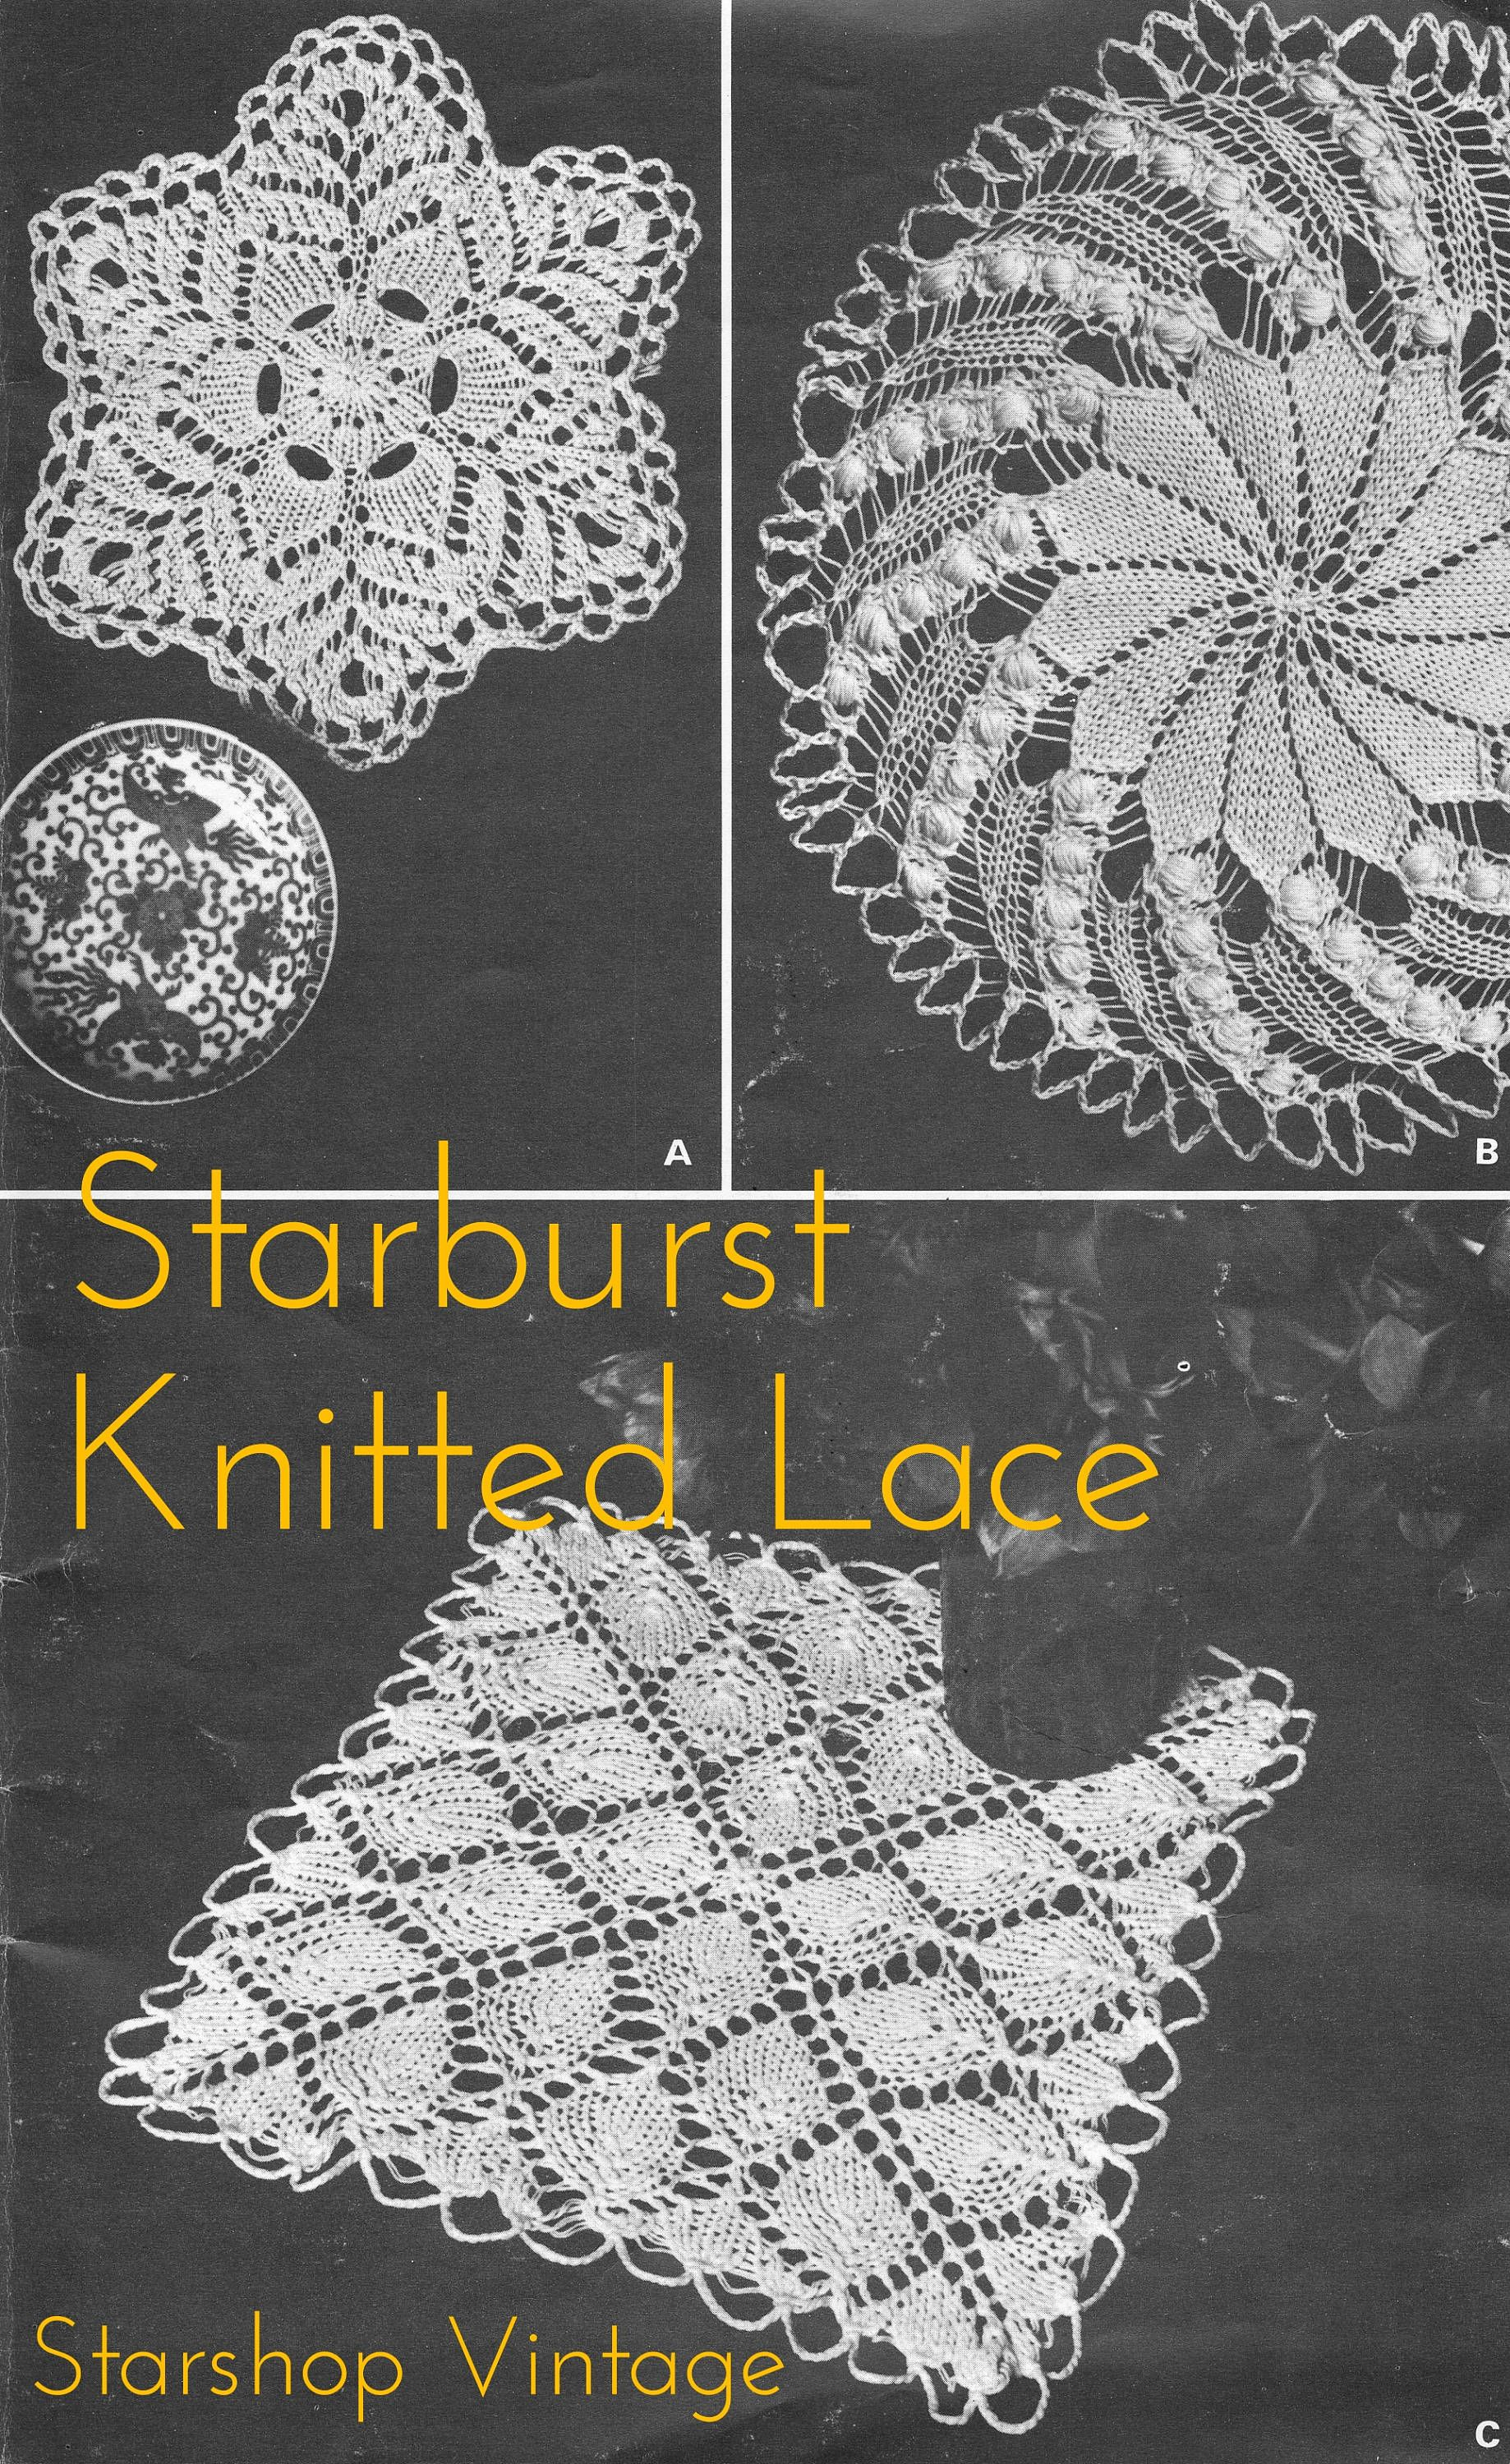 Starburst knitted lace 1970s lace knitting patterns vintage starburst knitted lace 1970s lace knitting patterns vintage 70s pattern by thestarshop on etsy bankloansurffo Images